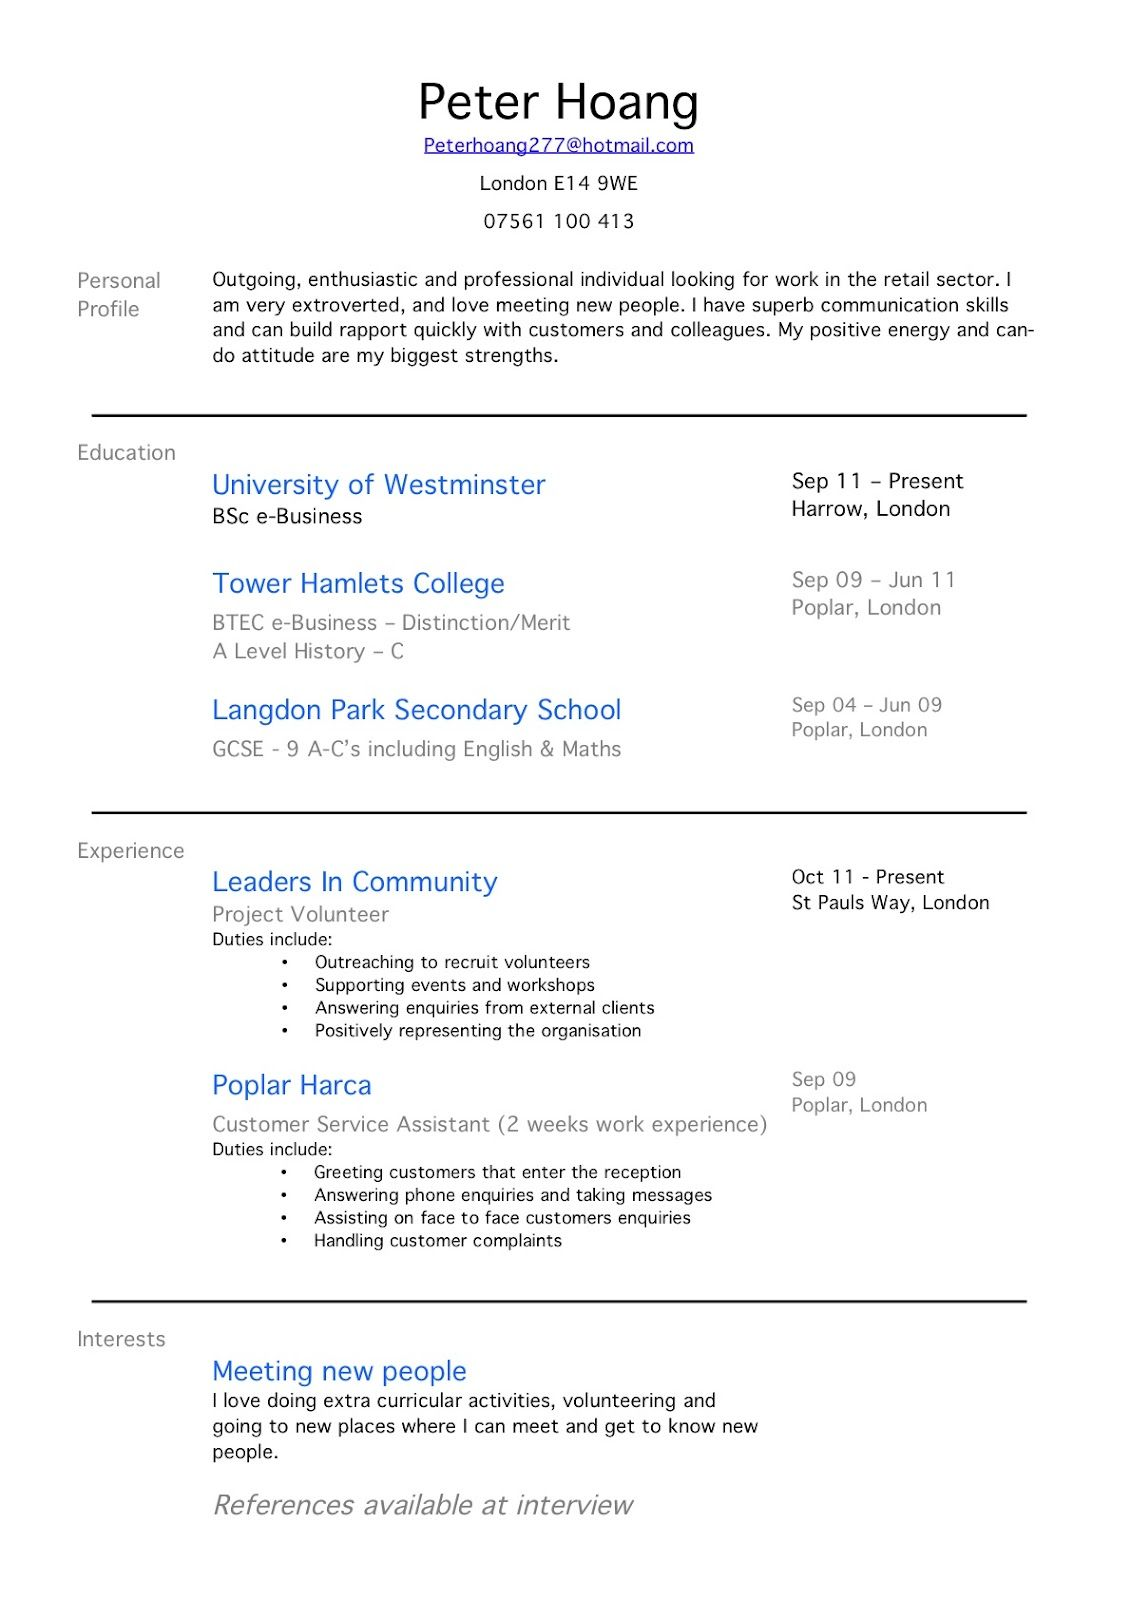 Resume Examples For College Students With No Experience How To Write A Teacher Resume With No Experience  Resume Examples